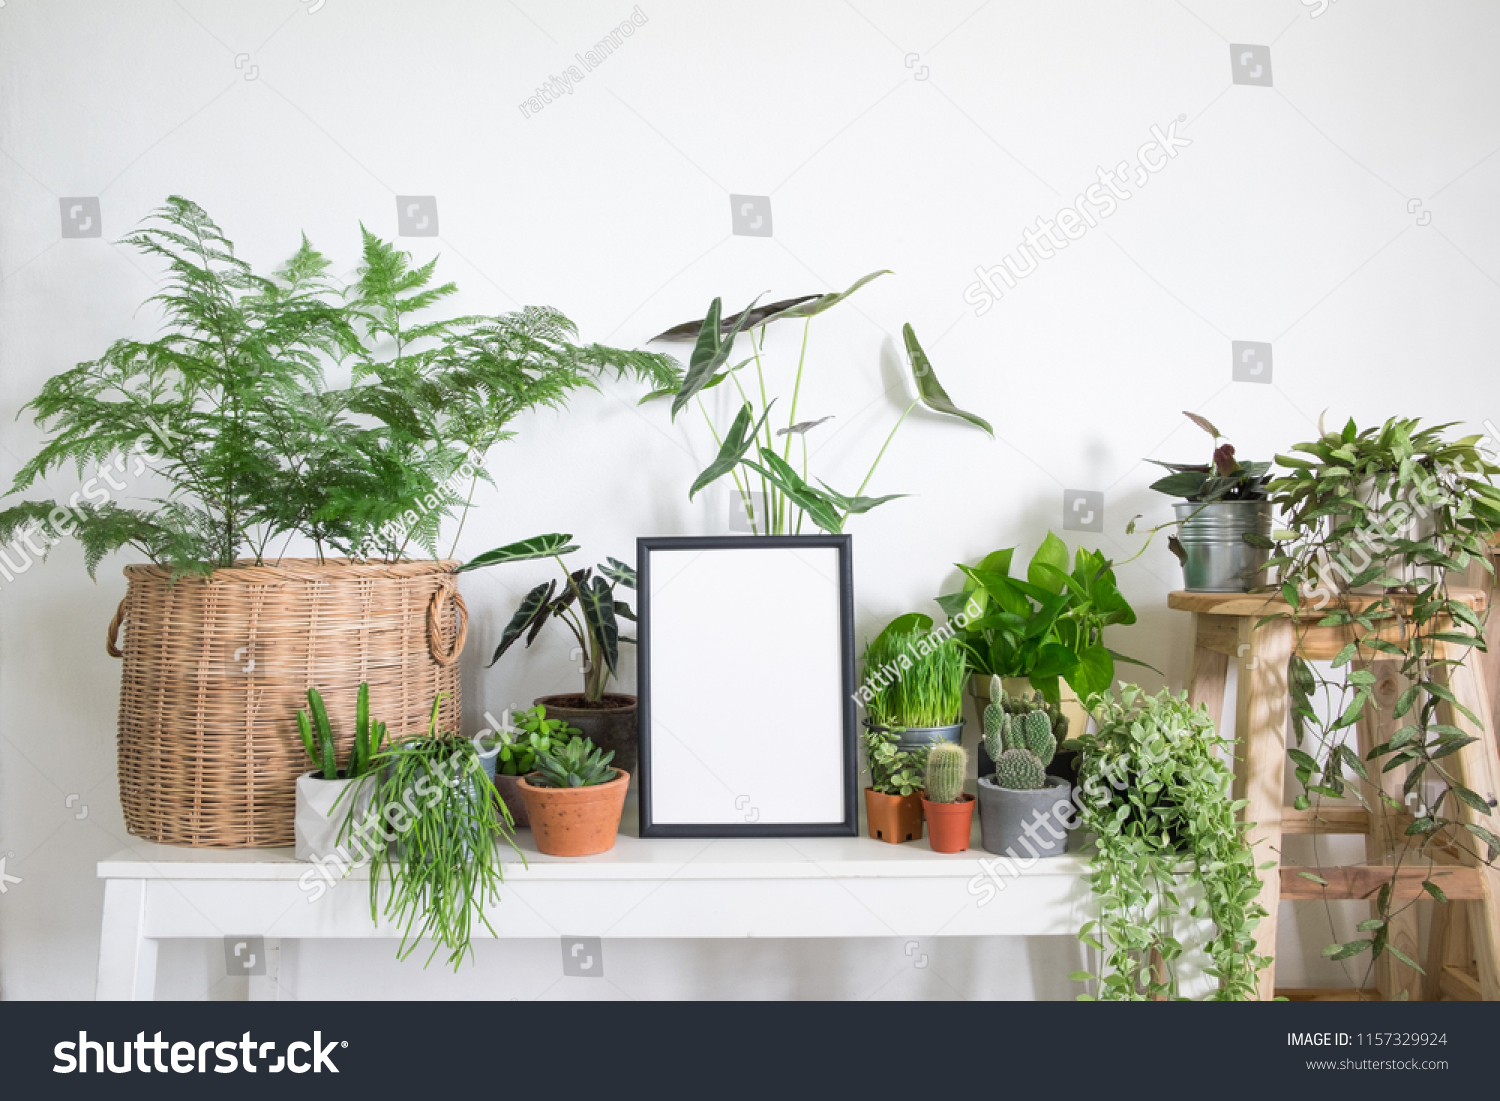 Mock Up Frame Poster With Houseplants In Room Lifestyle Home Decor And Tree Lover Concept